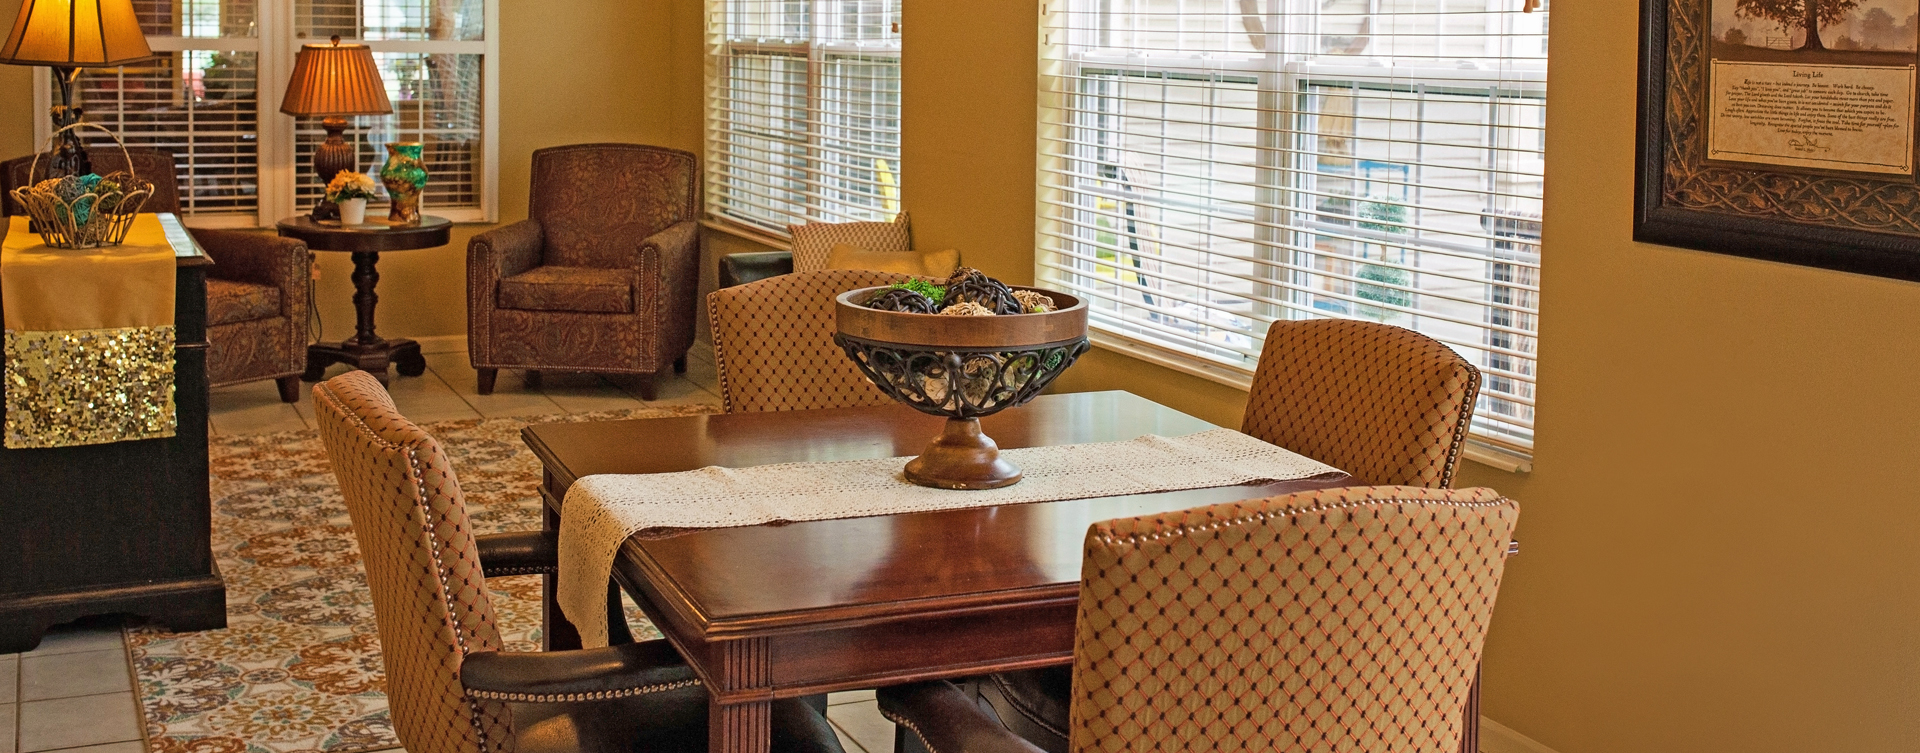 Relax in the warmth of the sunroom at Bickford of Cedar Falls